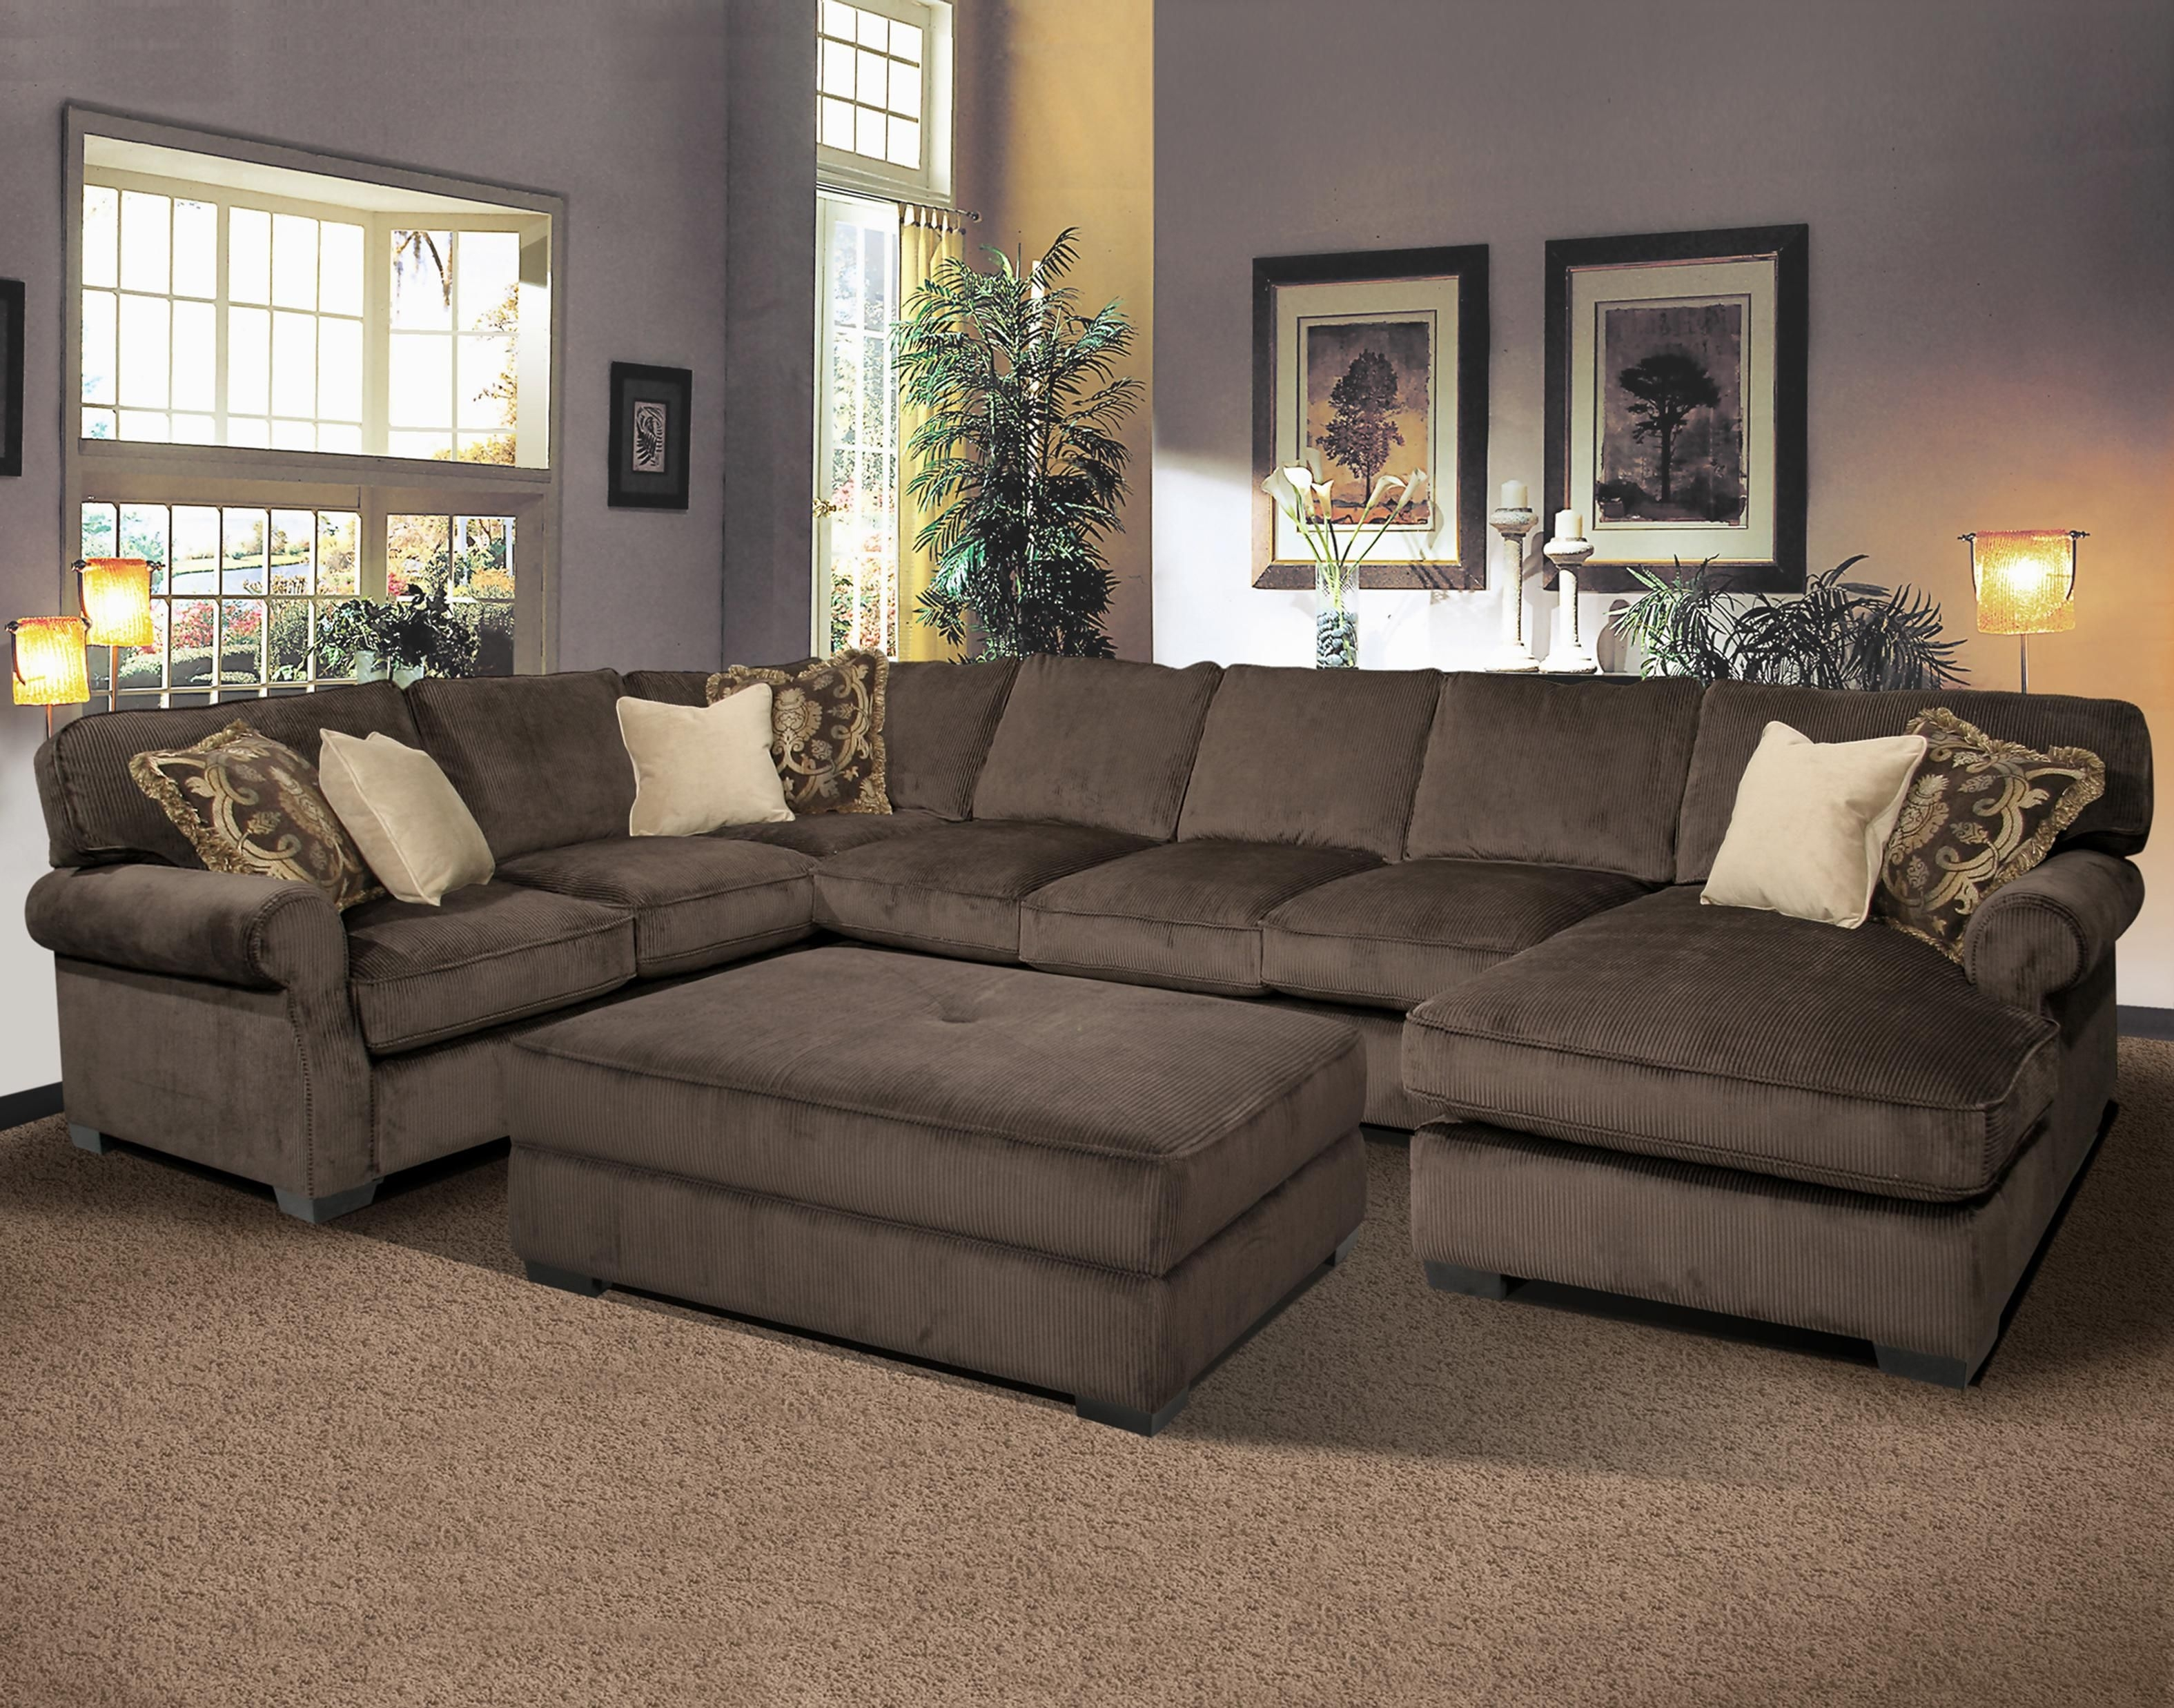 Big And Comfy Grand Island Large, 7 Seat Sectional Sofa With Right In Grand Furniture Sectional Sofas (Image 2 of 10)